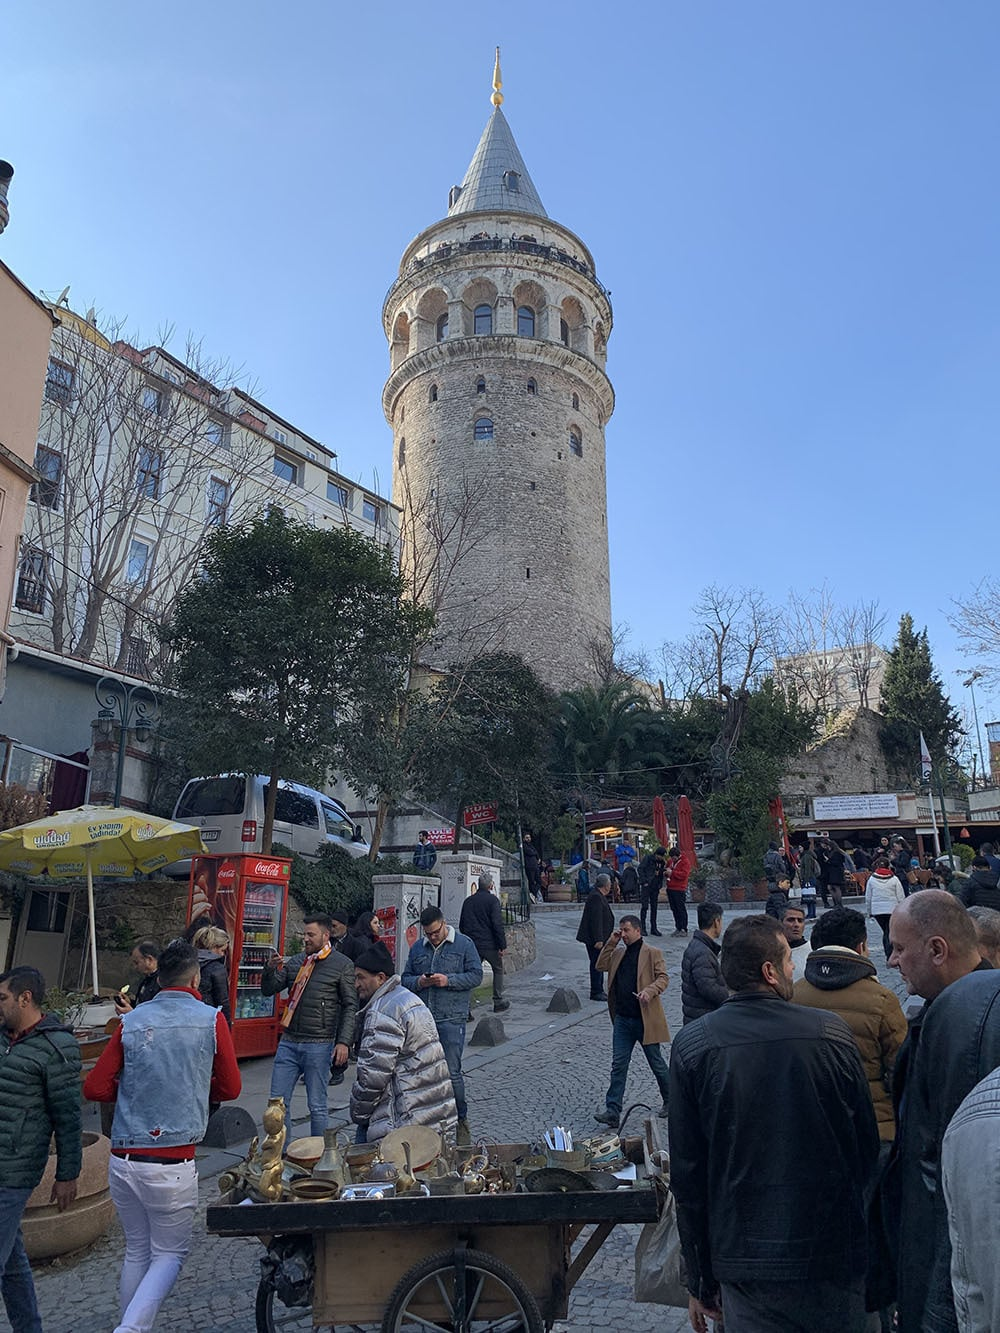 The medieval Galata Tower is one of the most prominent landmarks in Beyoğlu.